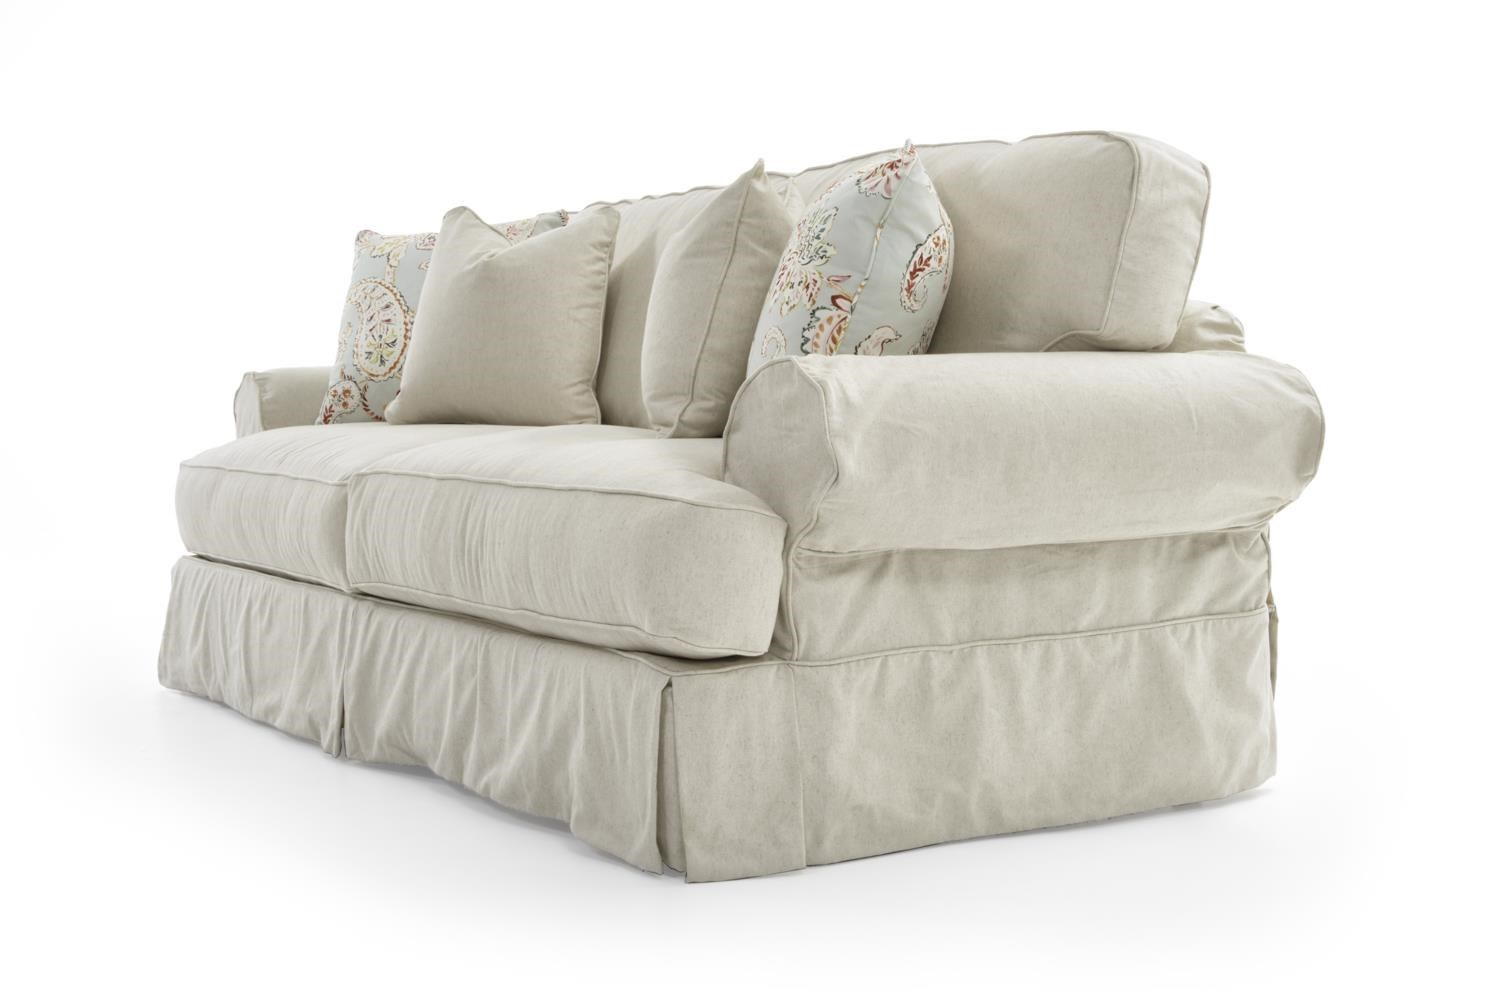 ... Rowe Addison Traditional 2 Seat Sofa With Slipcover ...